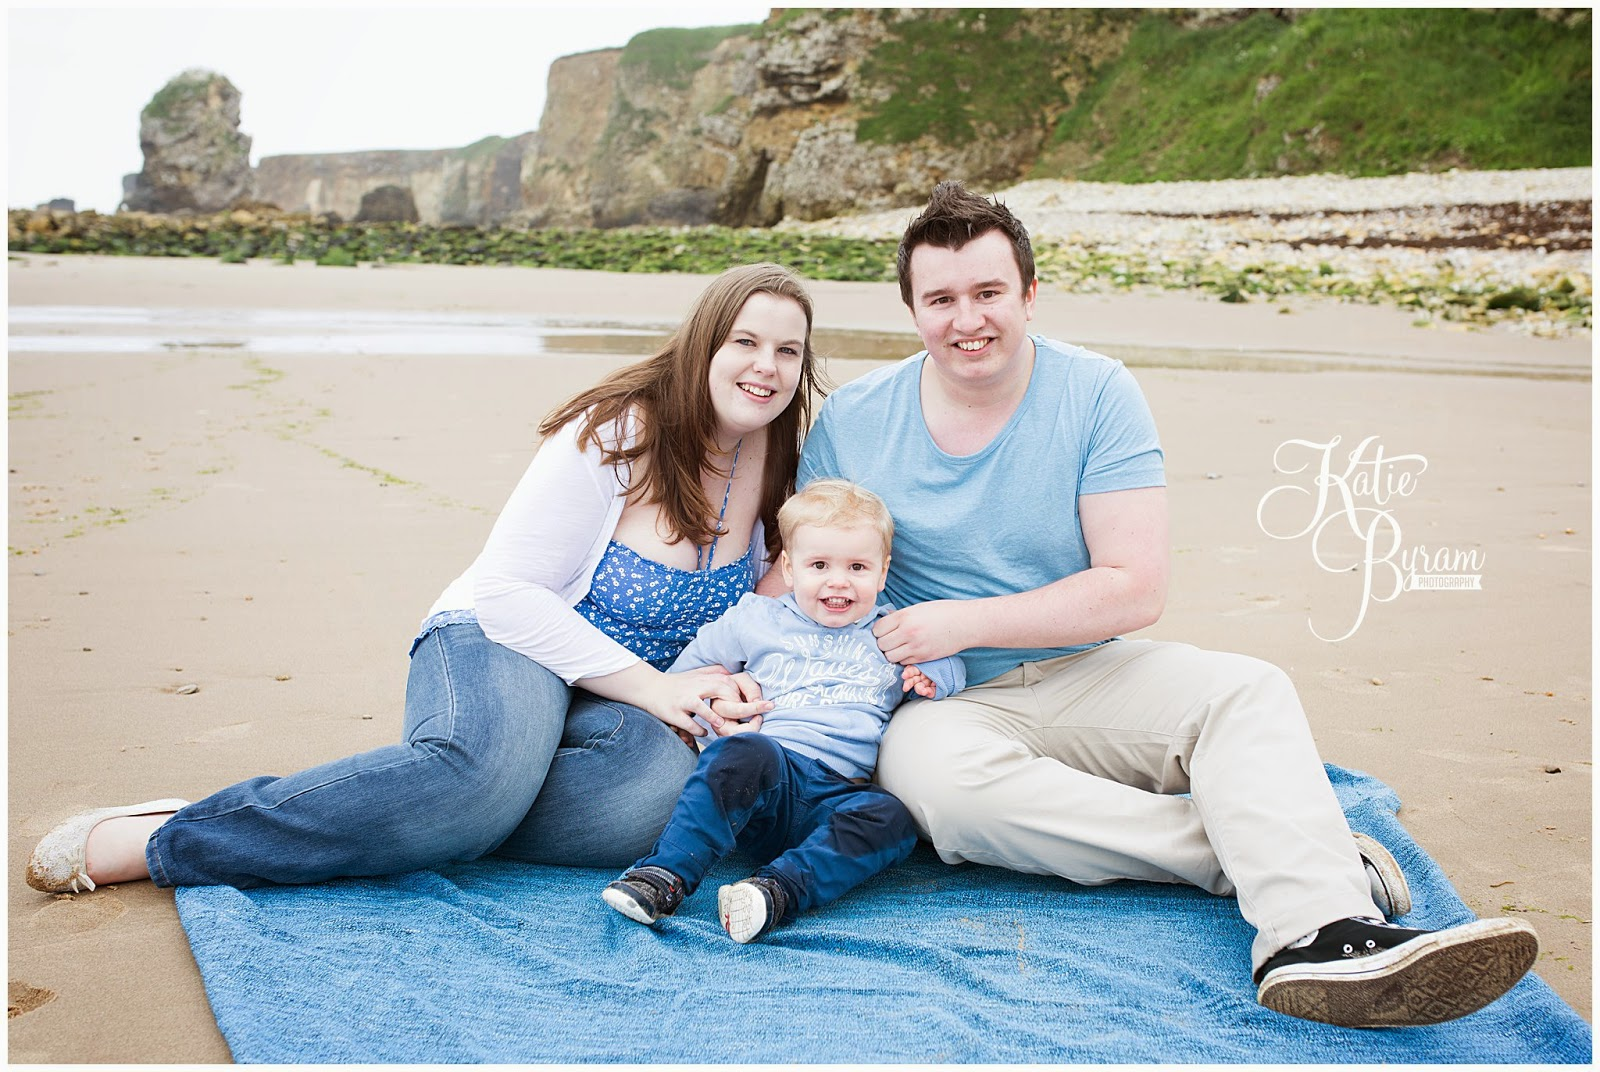 newcastle wedding photographer, marsden grotto wedding, beach wedding venue, tynemouth wedding, south shields wedding, katie byram photography